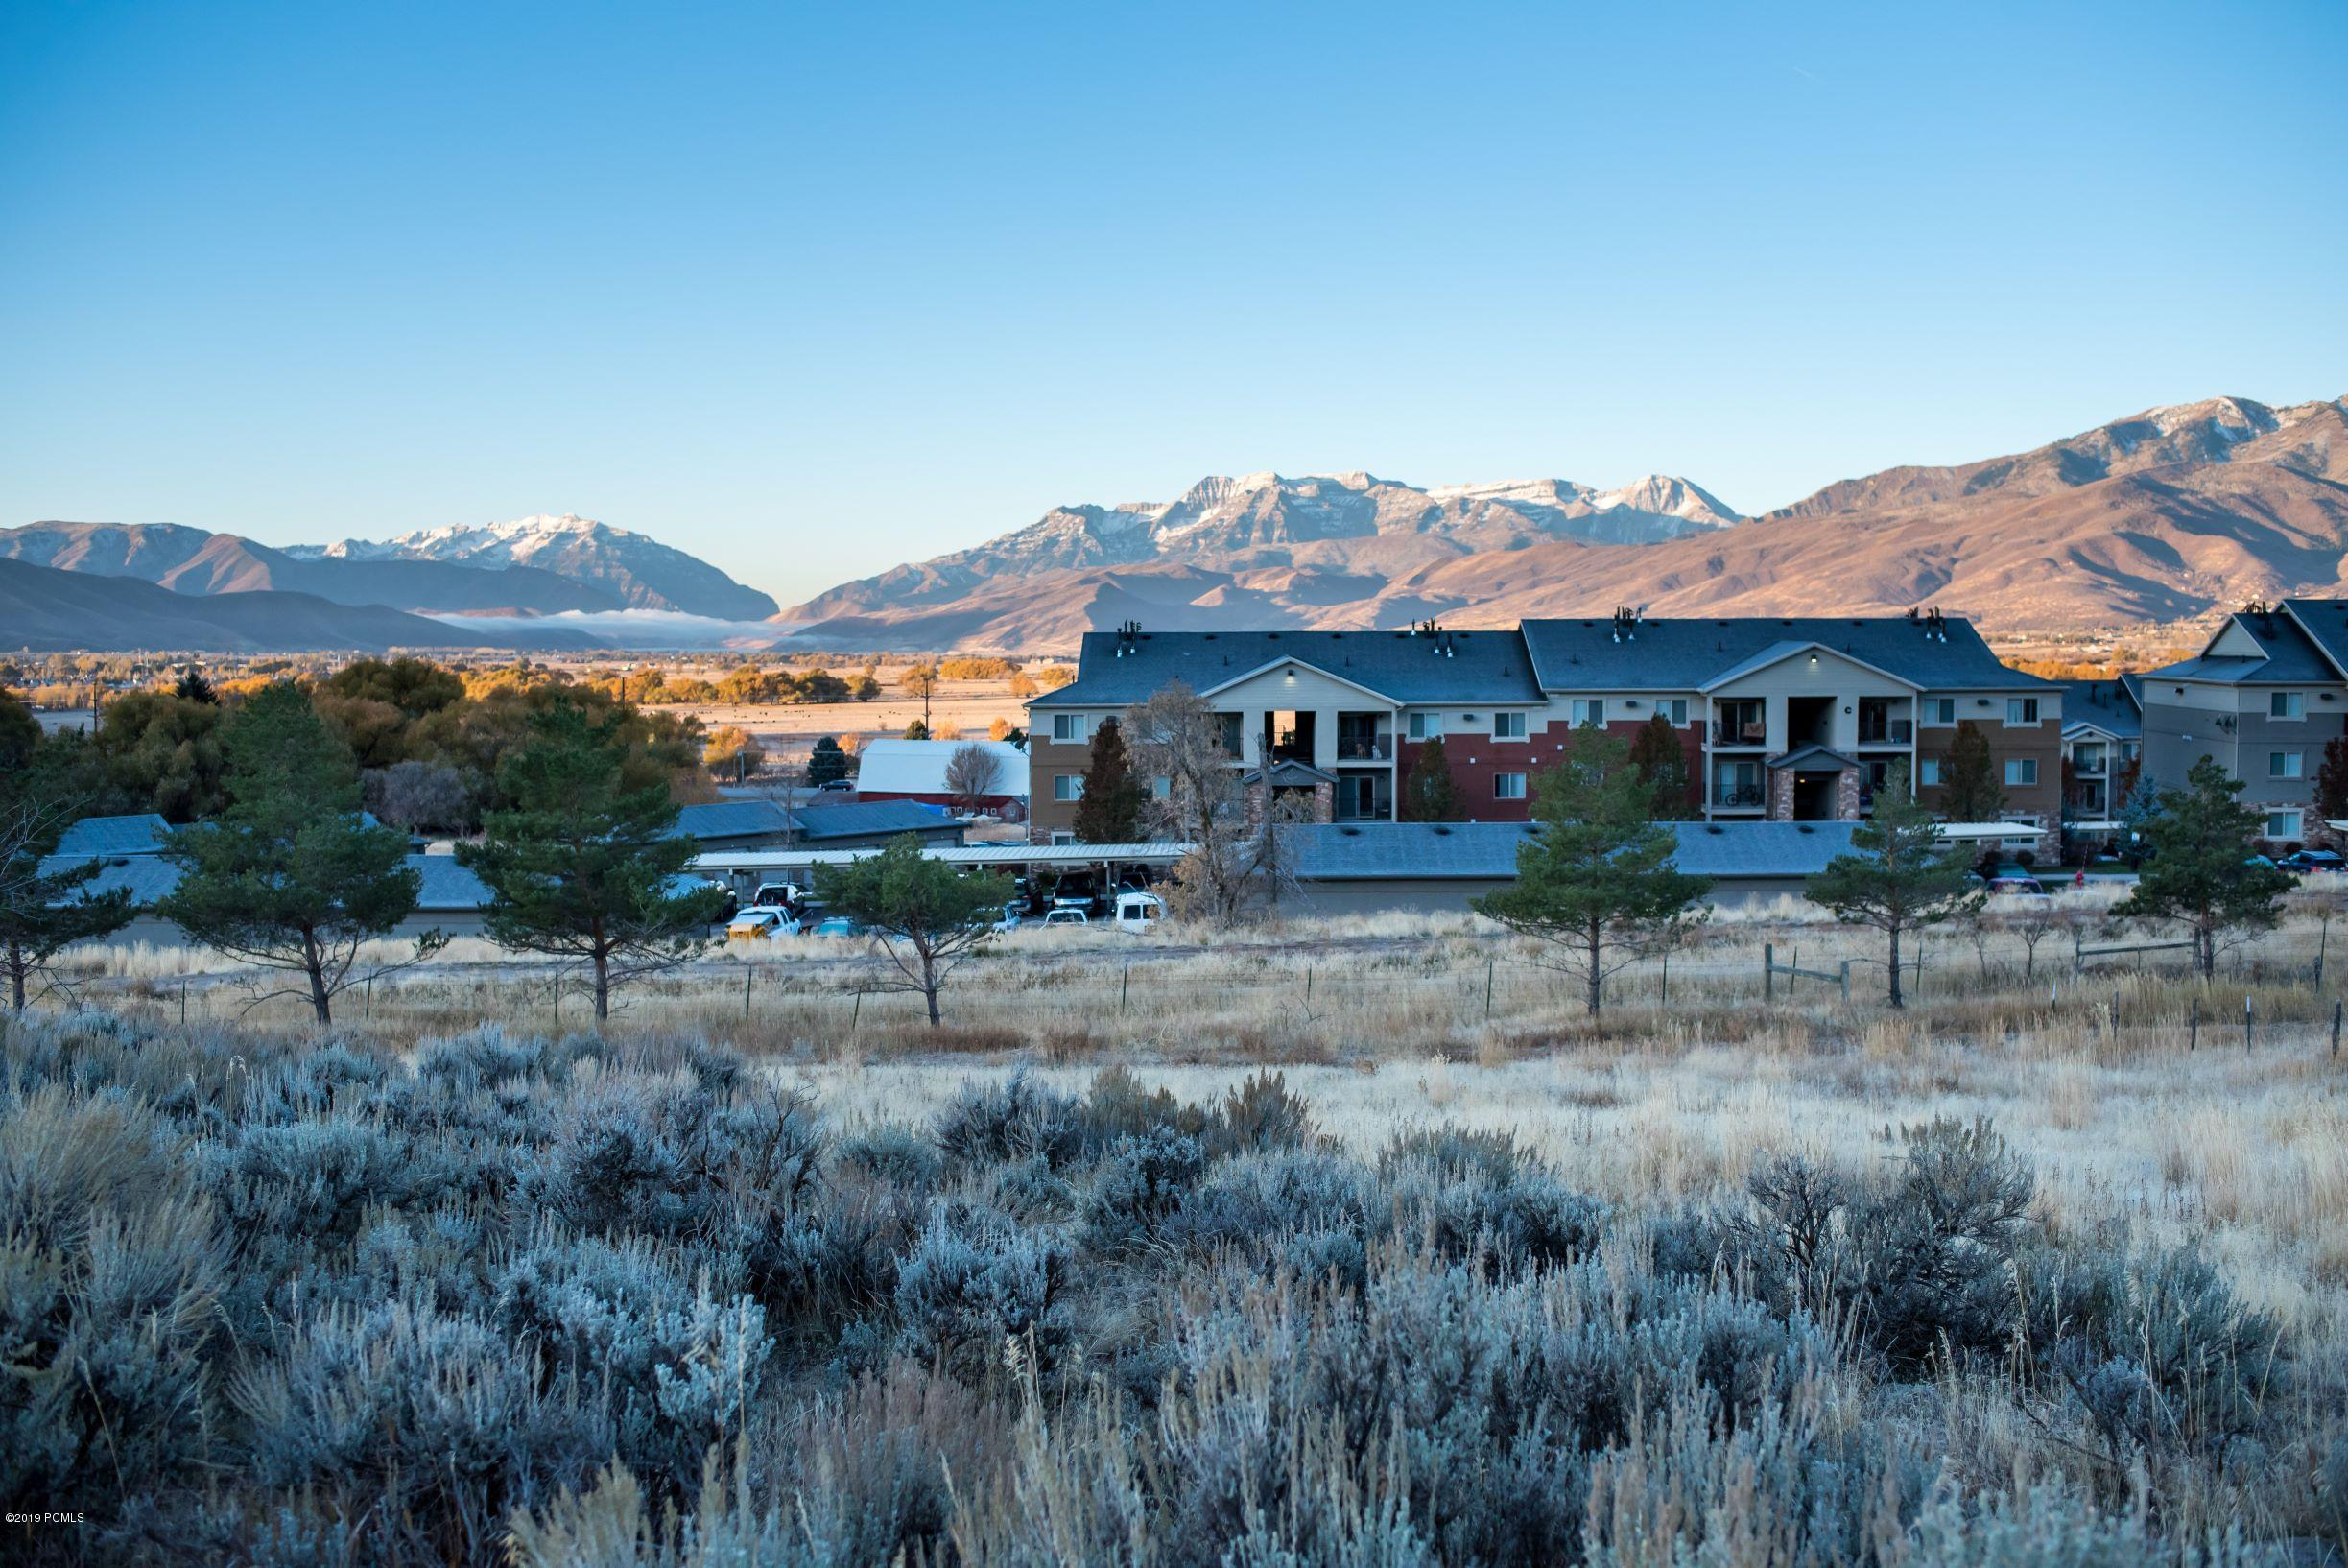 1033 Tatton Park Drive, Heber City, Utah 84032, ,Land,For Sale,Tatton Park,20190109112430415765000000